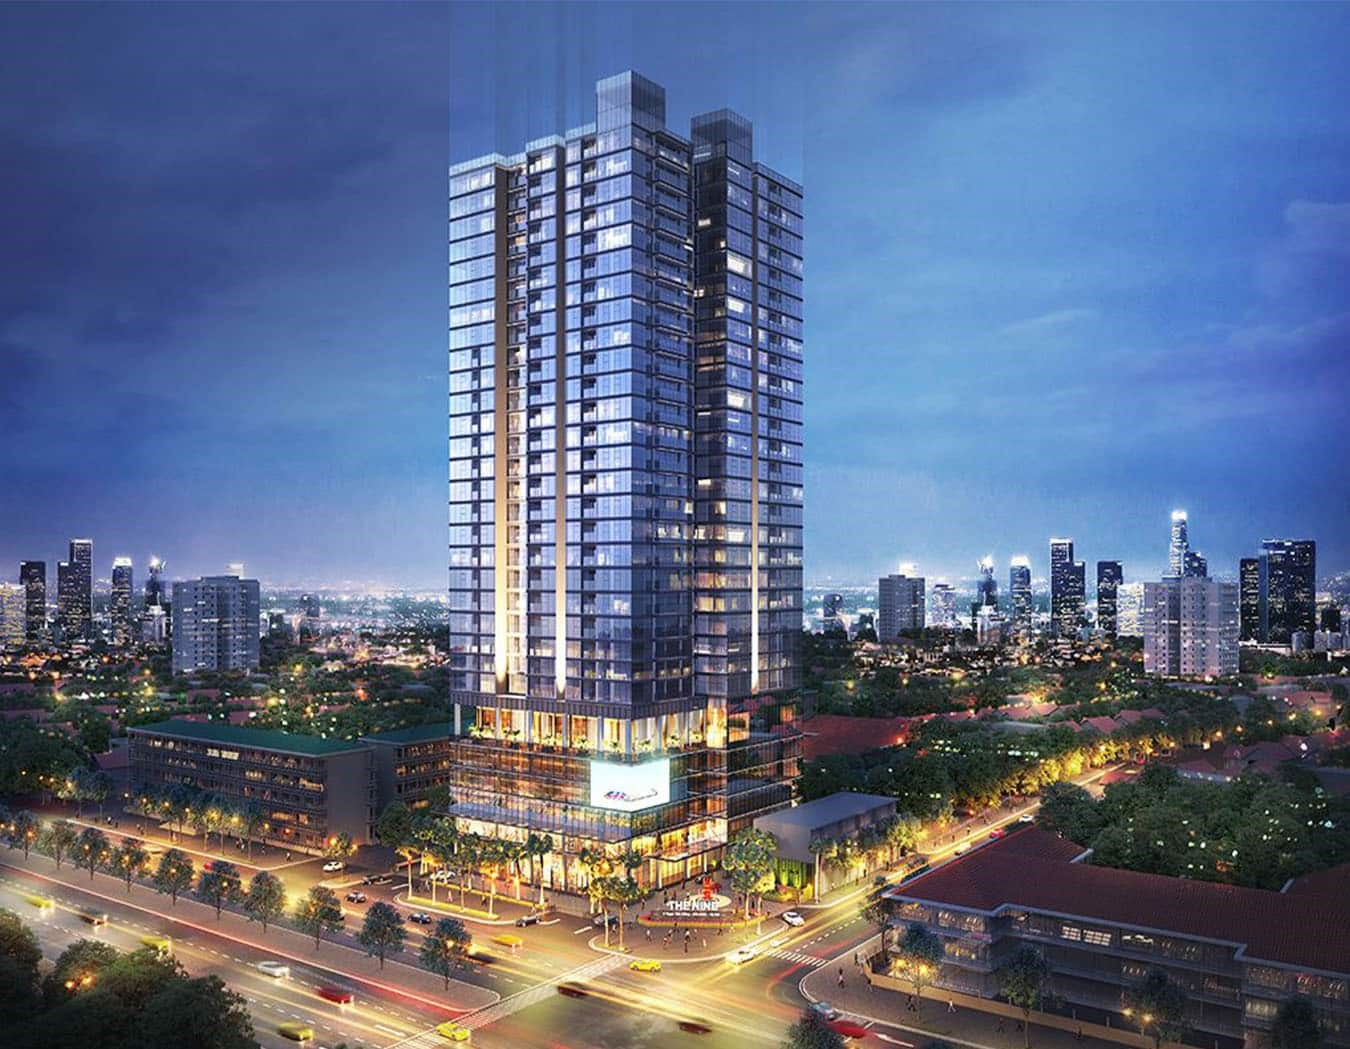 ThucviLand will conduct the distribution of The Nine Tower - a luxury real estate project in Hanoi, Vietnam